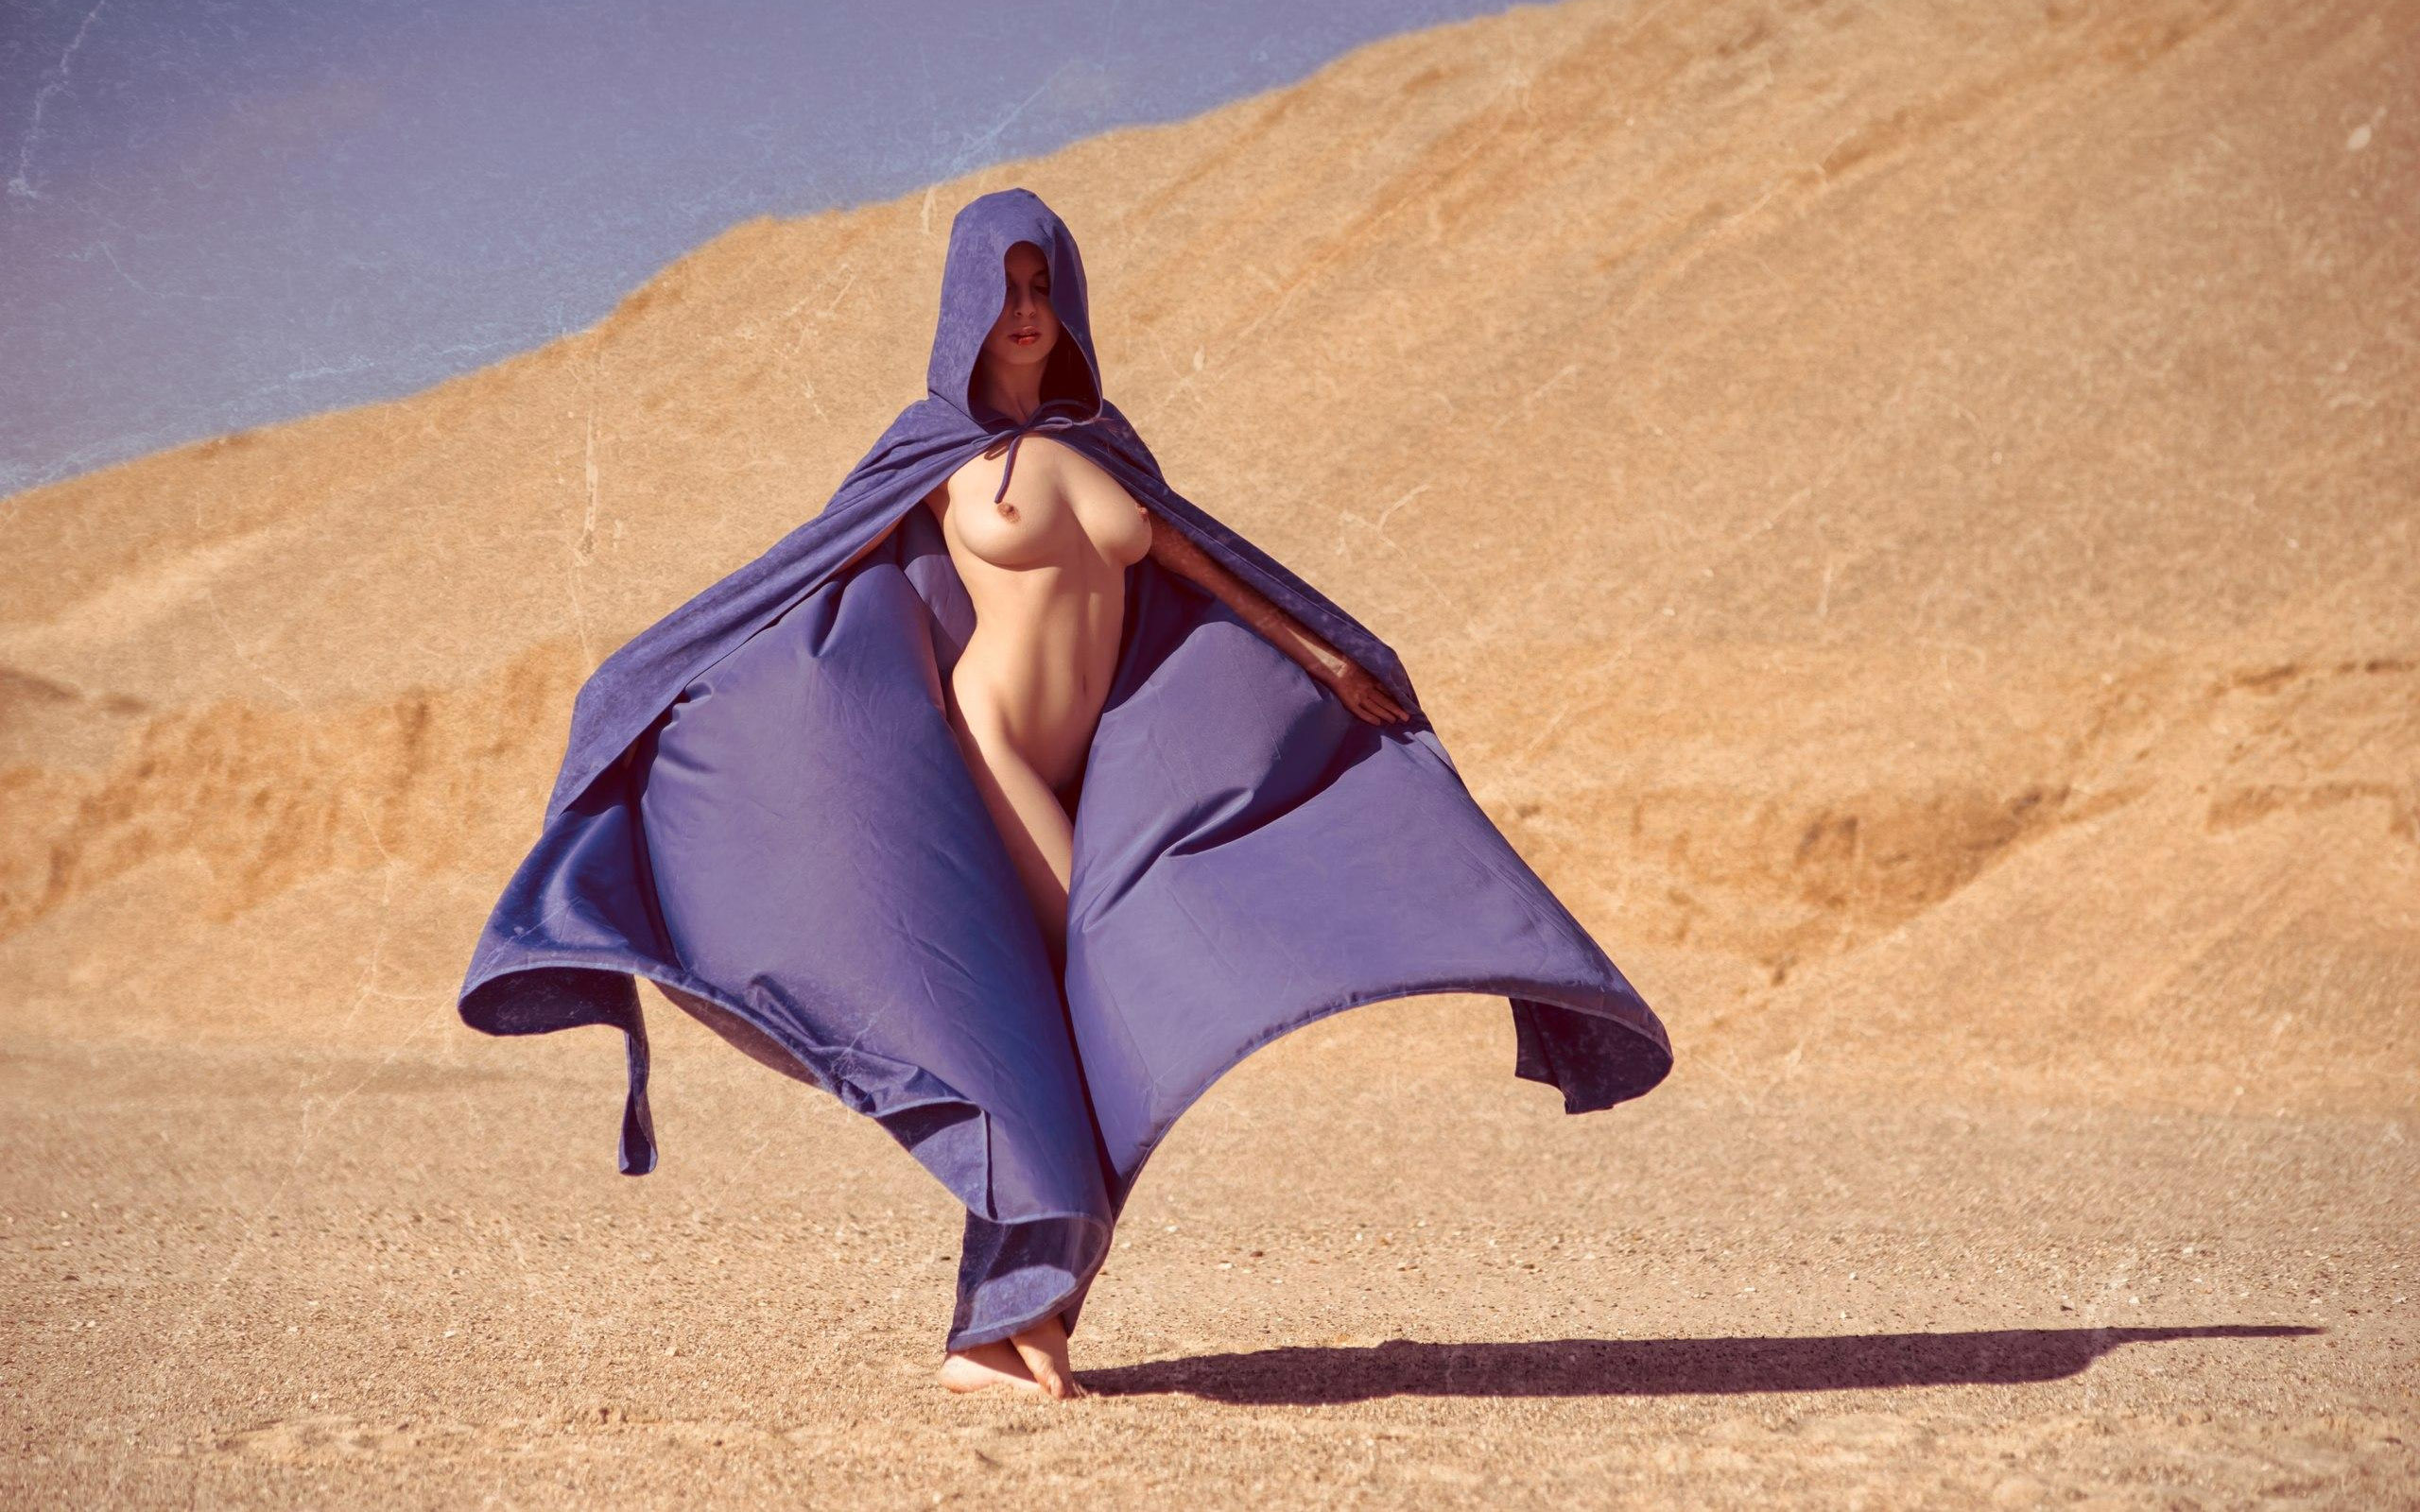 Wendy patton naked in the desert zishy